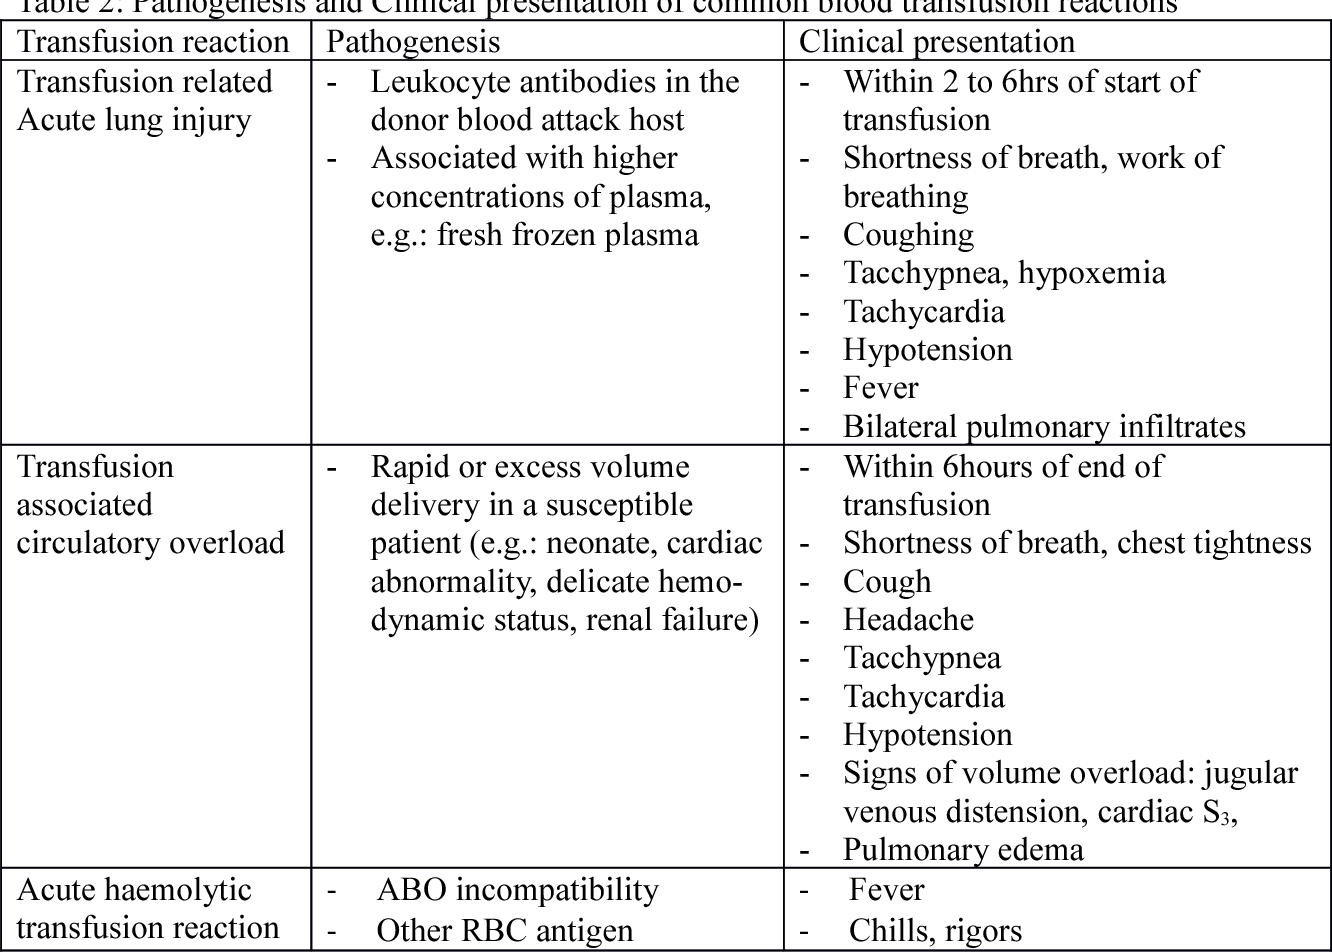 Table 2 From Blood Transfusion Reactions